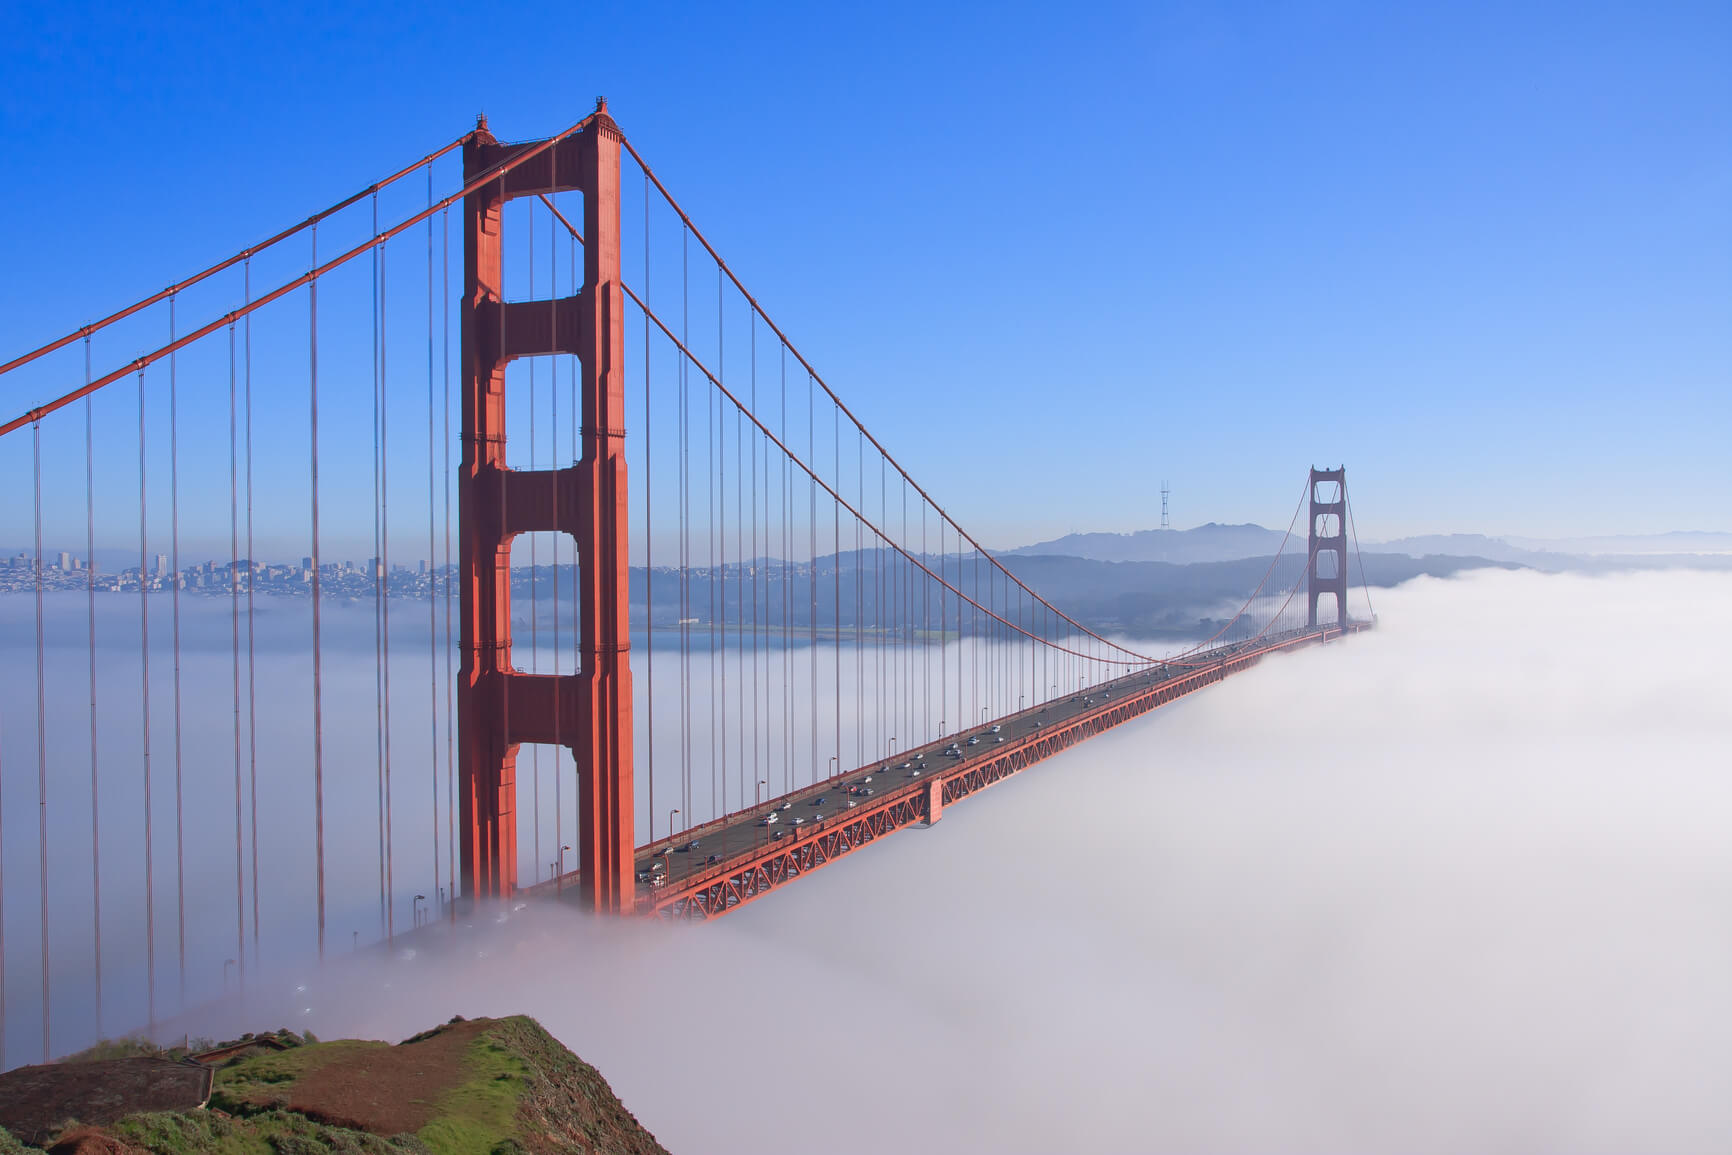 SUMMER & XMAS: Cairo, Egypt to San Francisco, USA for only $687 USD roundtrip (Aug-Mar dates)